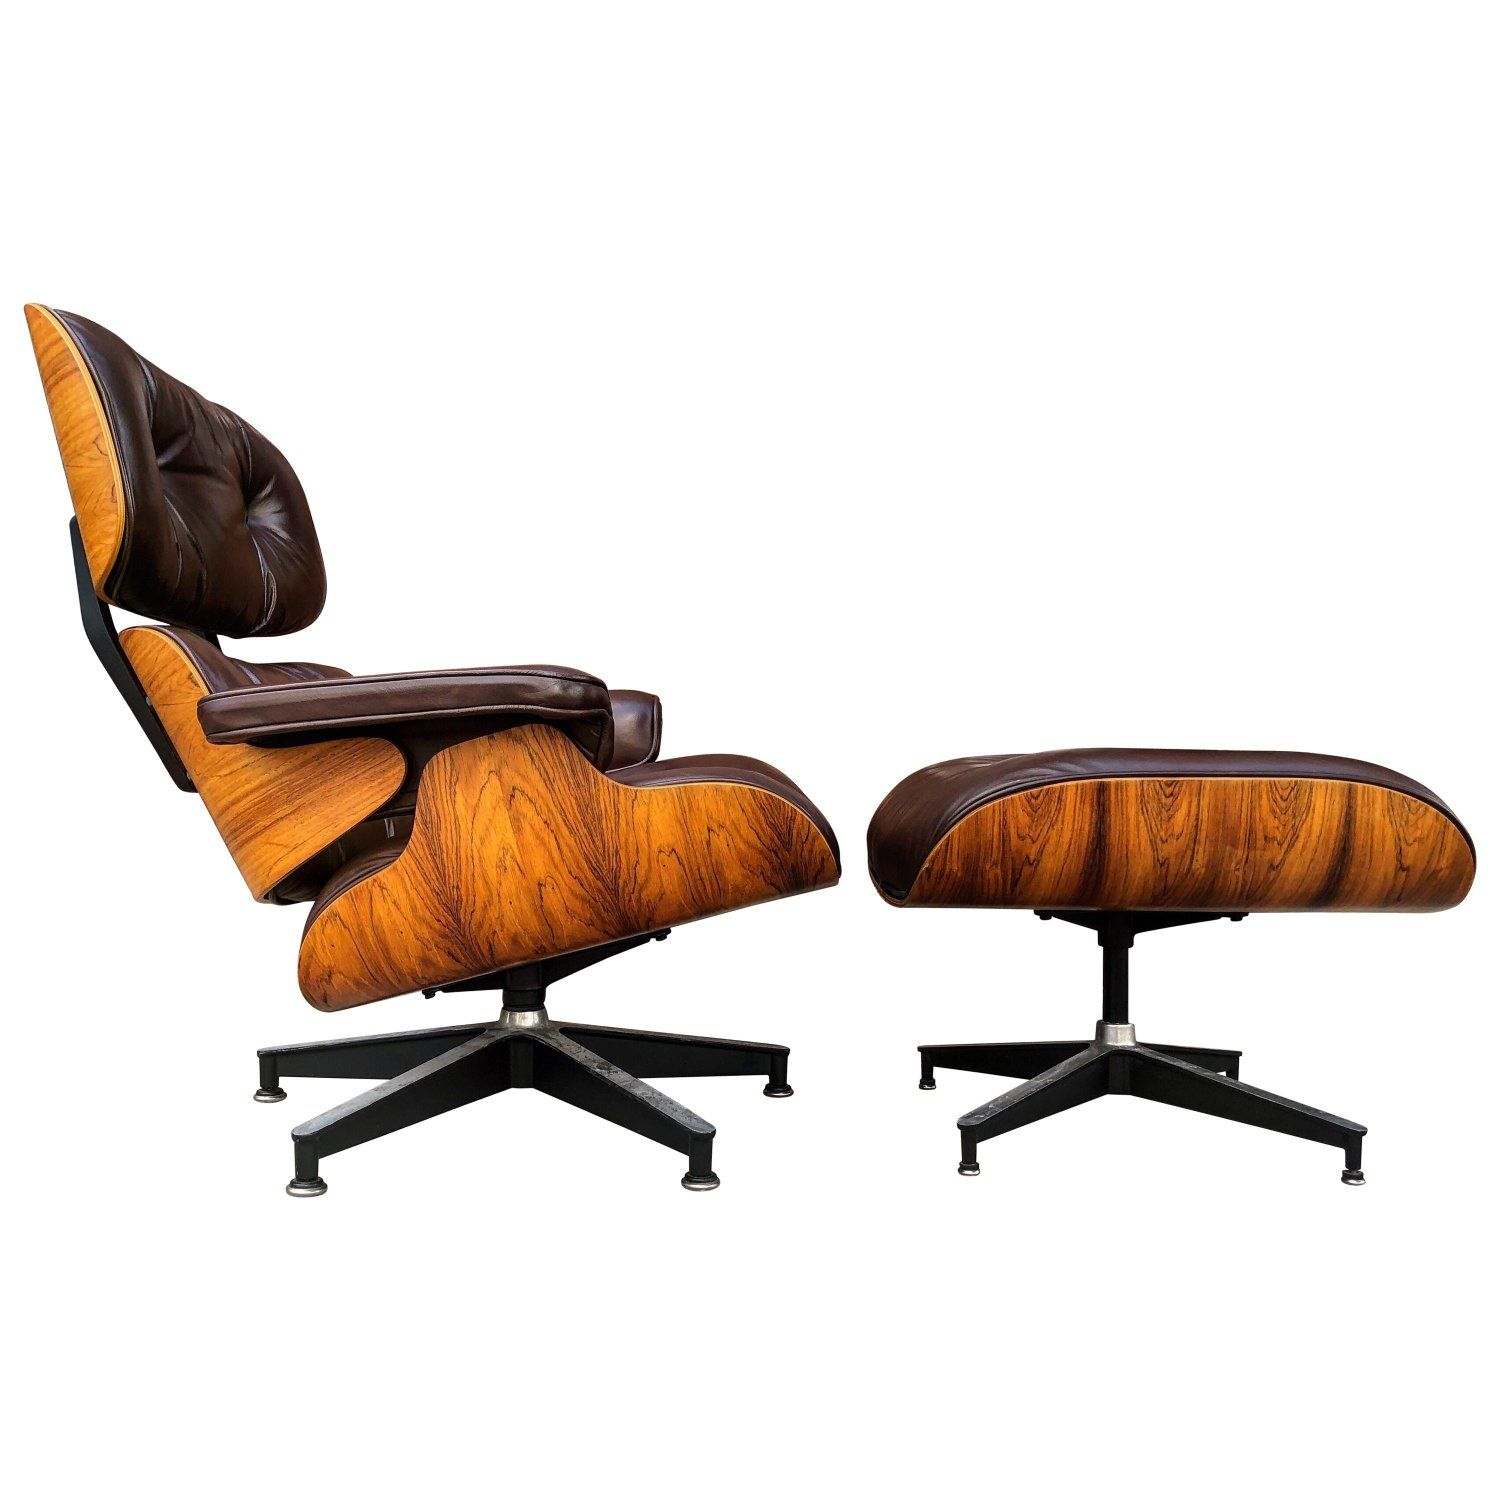 Fantastic Herman Miller Eames Lounge Chair And Ottoman Eames Style Lounge Chair Charles Eames Lounge Chair Eames Lounge Chair